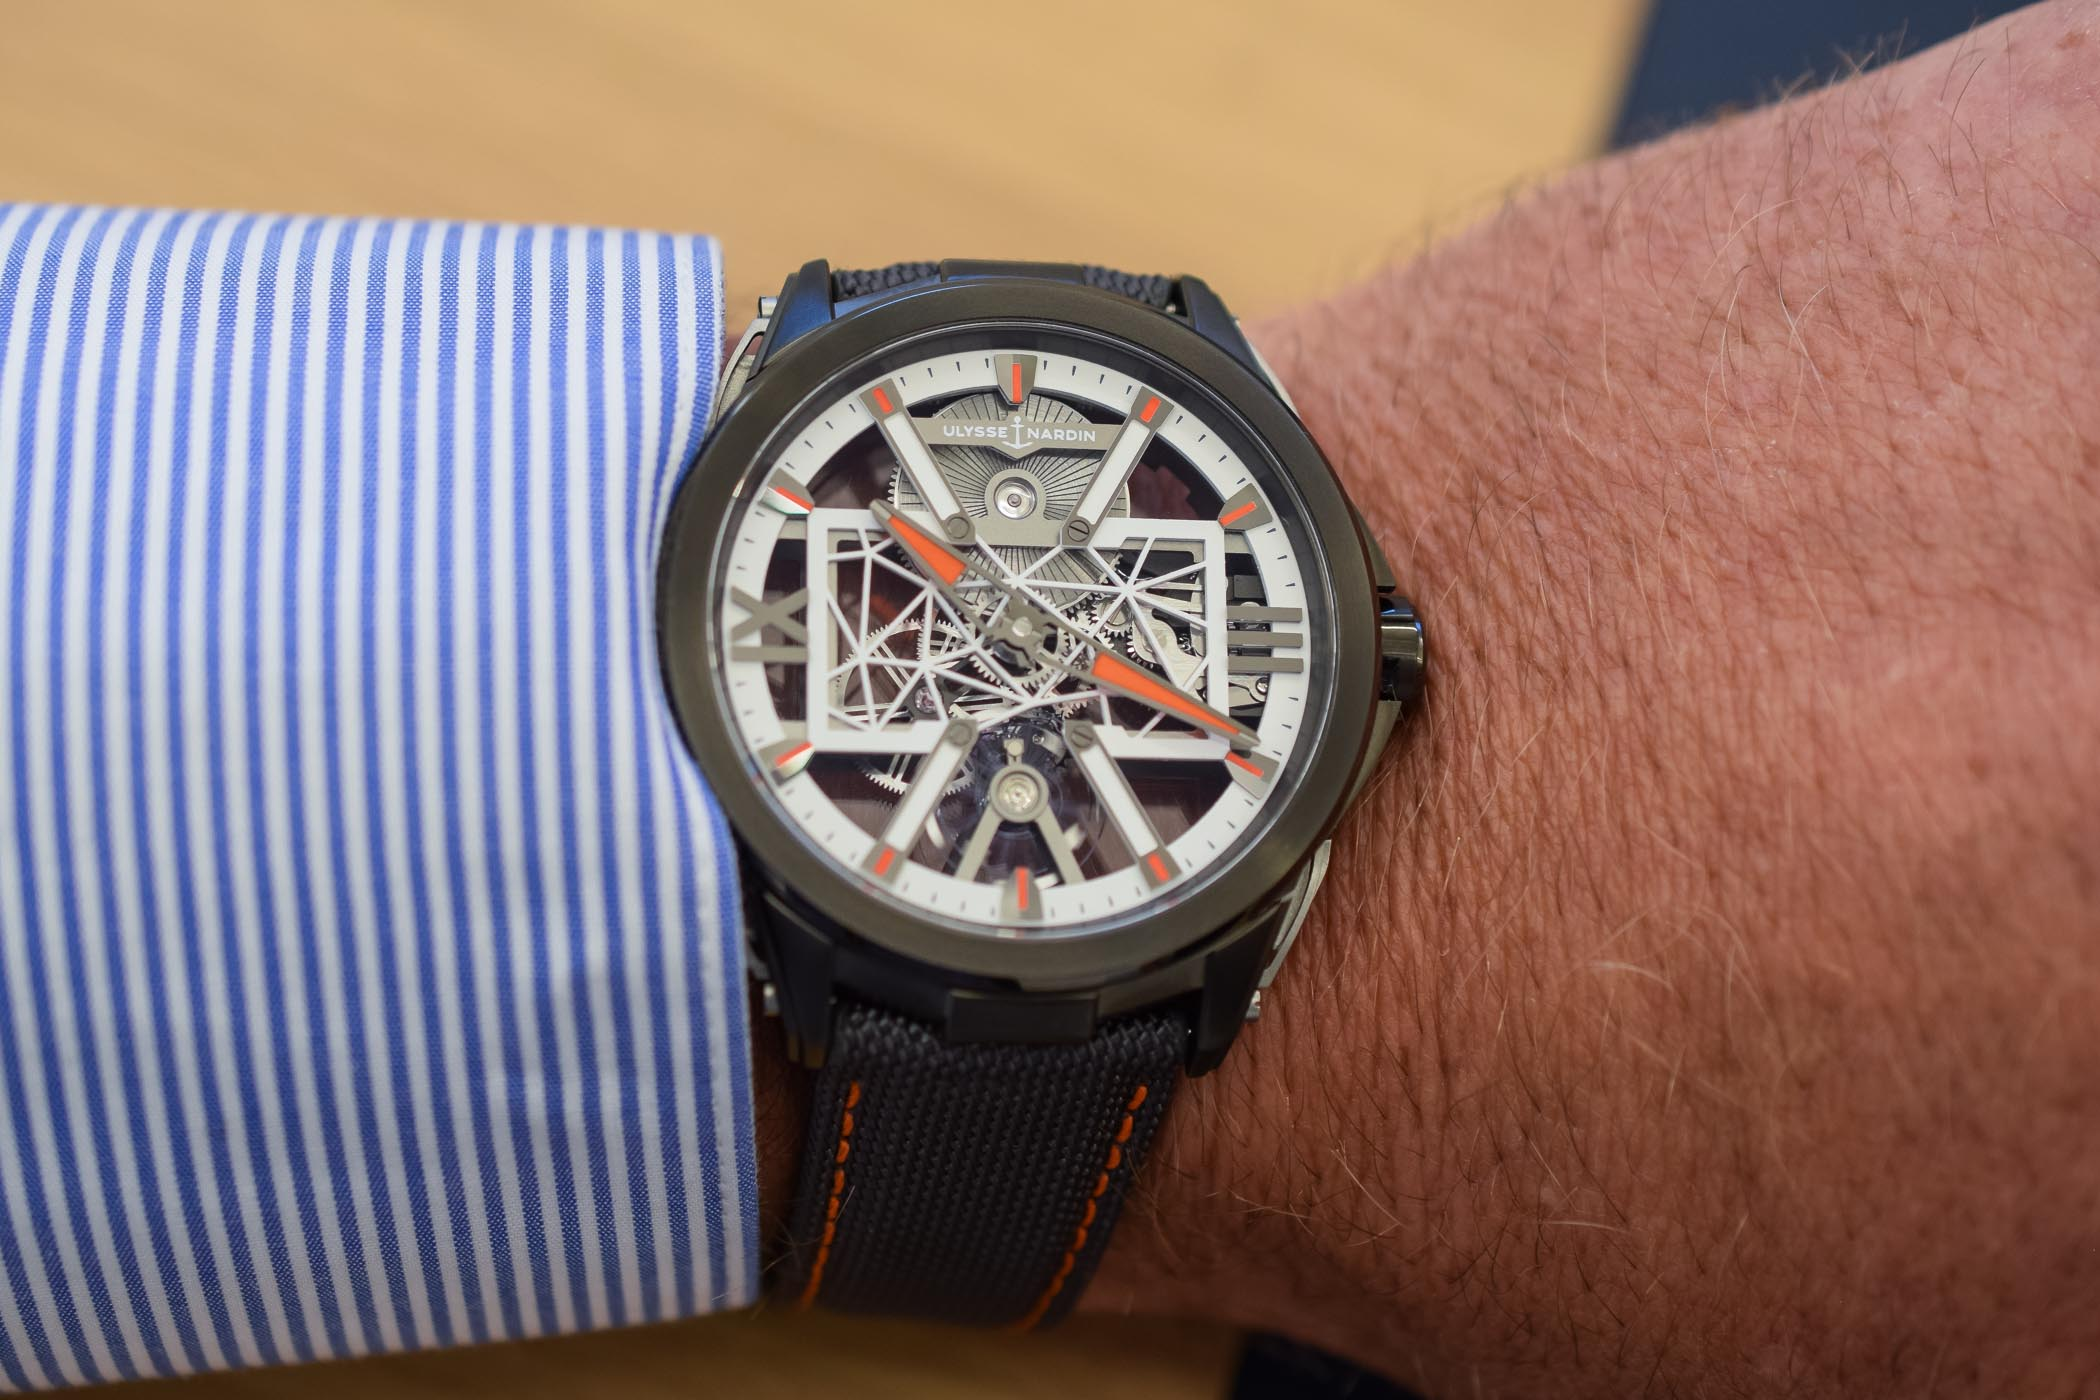 https://k8q7r7a2.stackpathcdn.com/wp-content/uploads/2019/07/Ulysse-Nardin-Exo-Skeleton-X-for-Only-Watch-2019-2.jpg